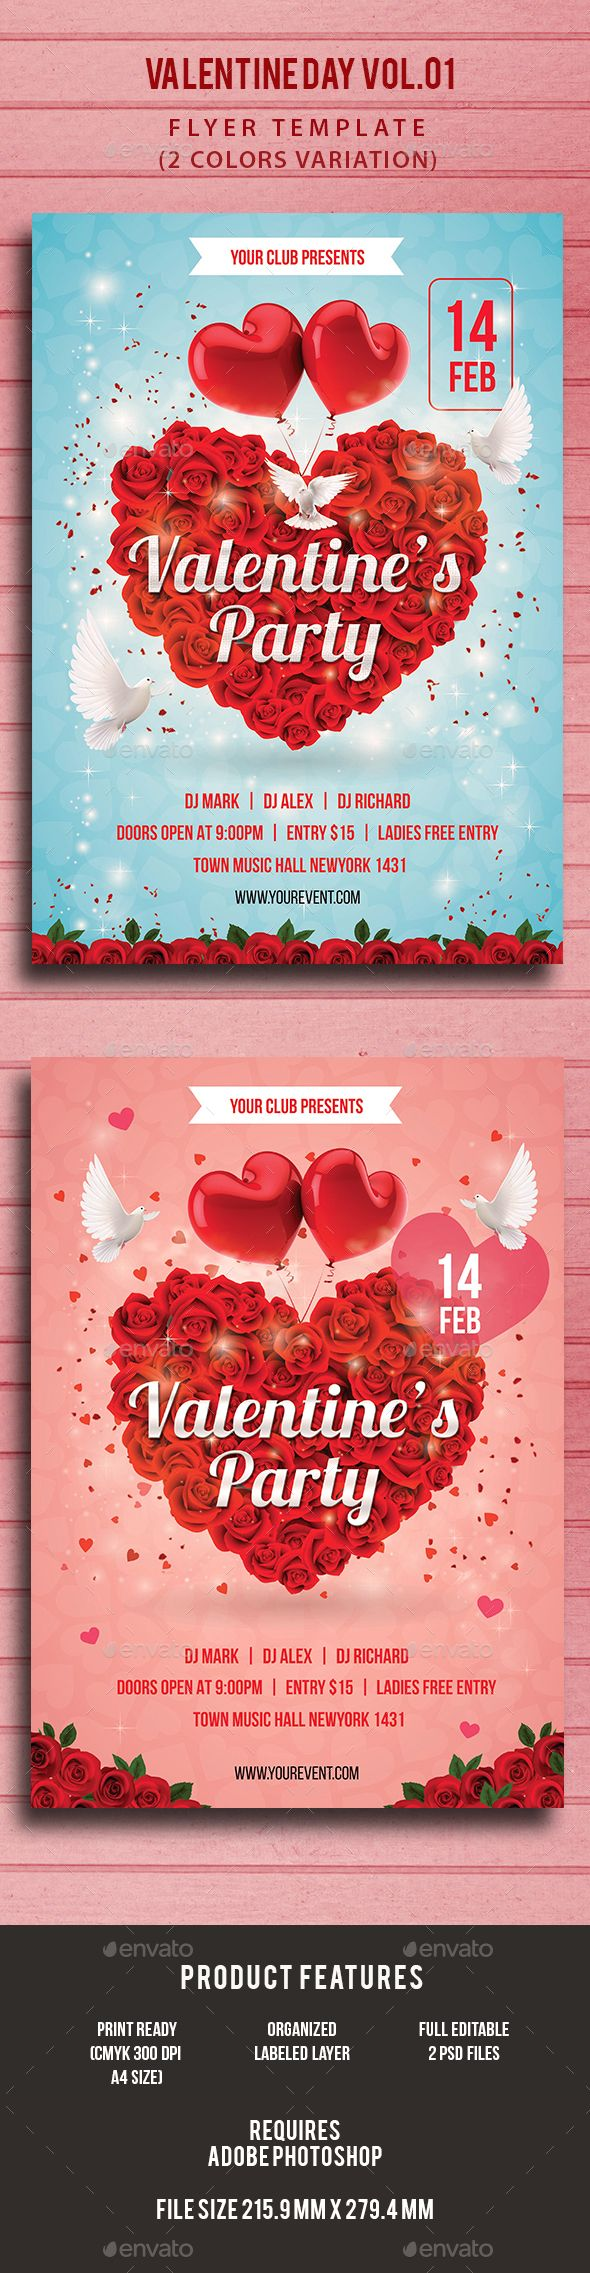 valentine s party dinner flyer valentines flyer template and design valentine day party flyer